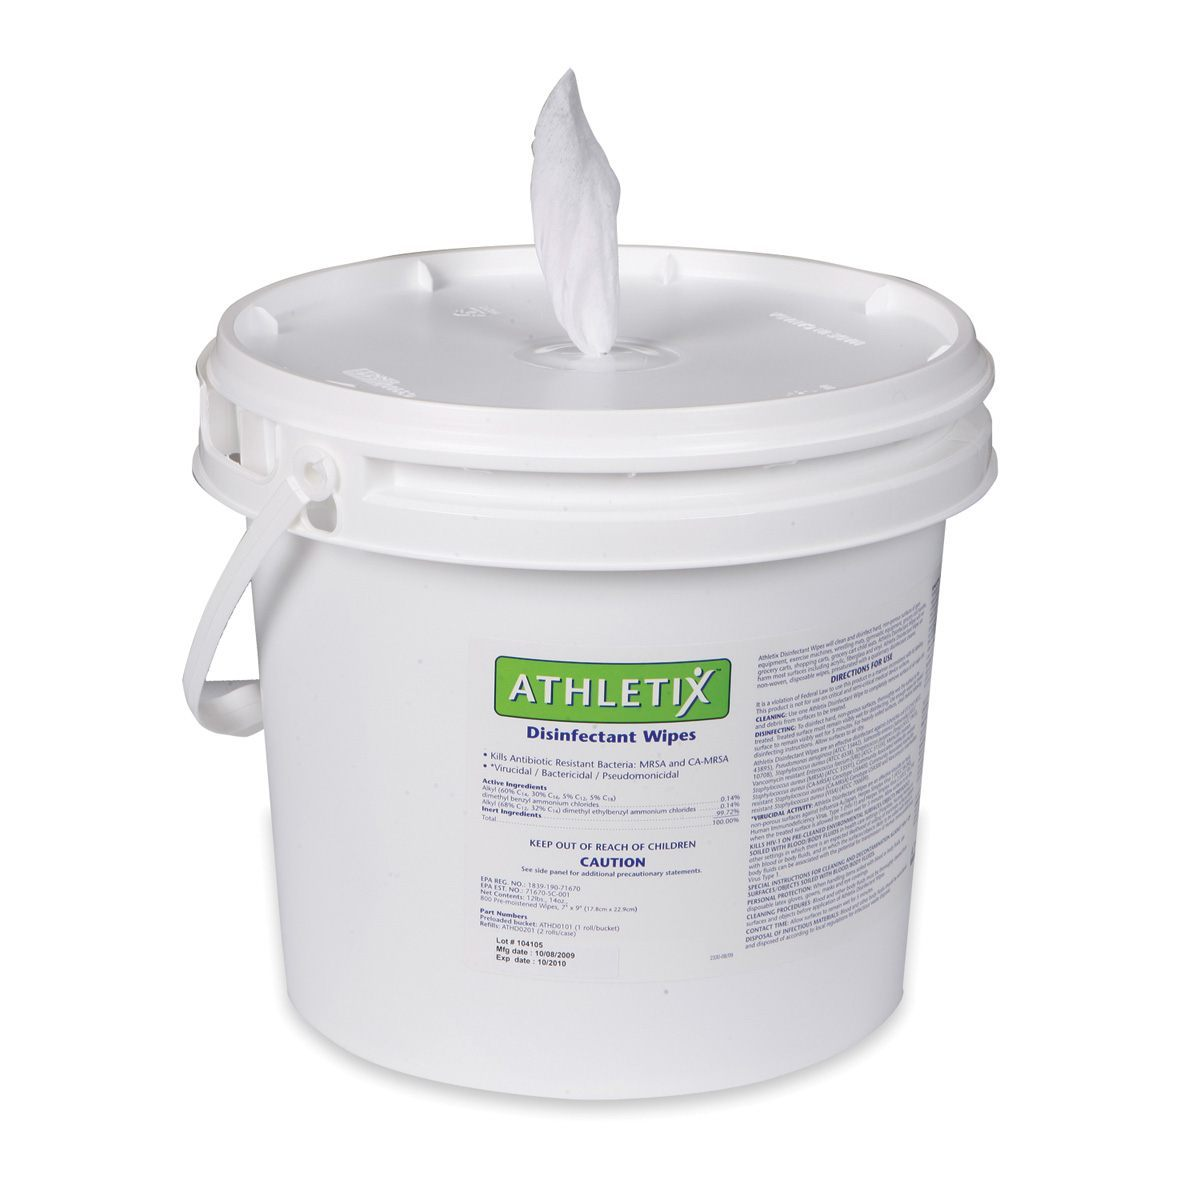 "Athletix Disinfectant Wipes, preloaded bucket - 8"" x 6"" (20 x 15cm) - 900/roll 1 bucket/case"